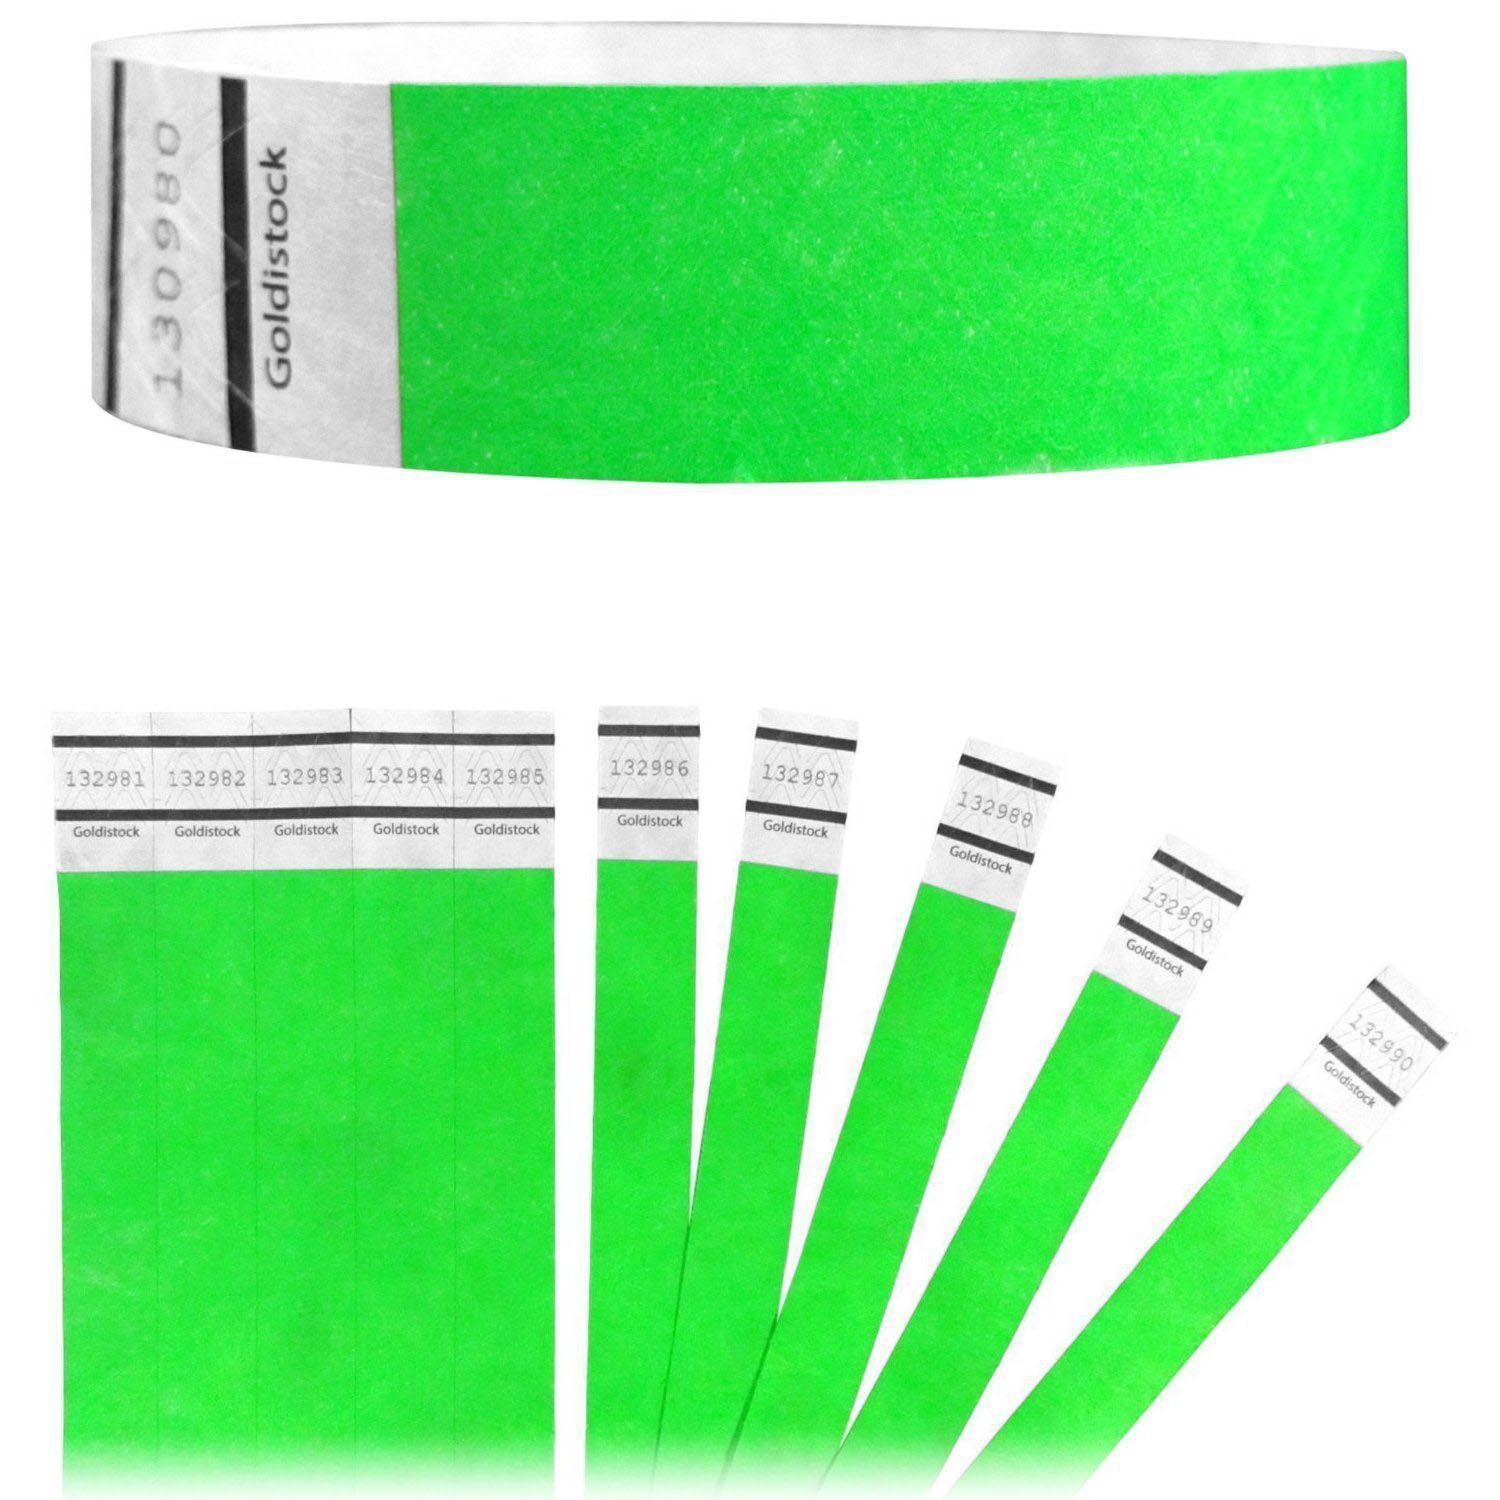 "Goldistock Original Series - 3/4"" Tyvek Wristbands Value Pack Vivid Neon Green 1,000 Count - Event Identification Bands (Paper - Like Texture)"